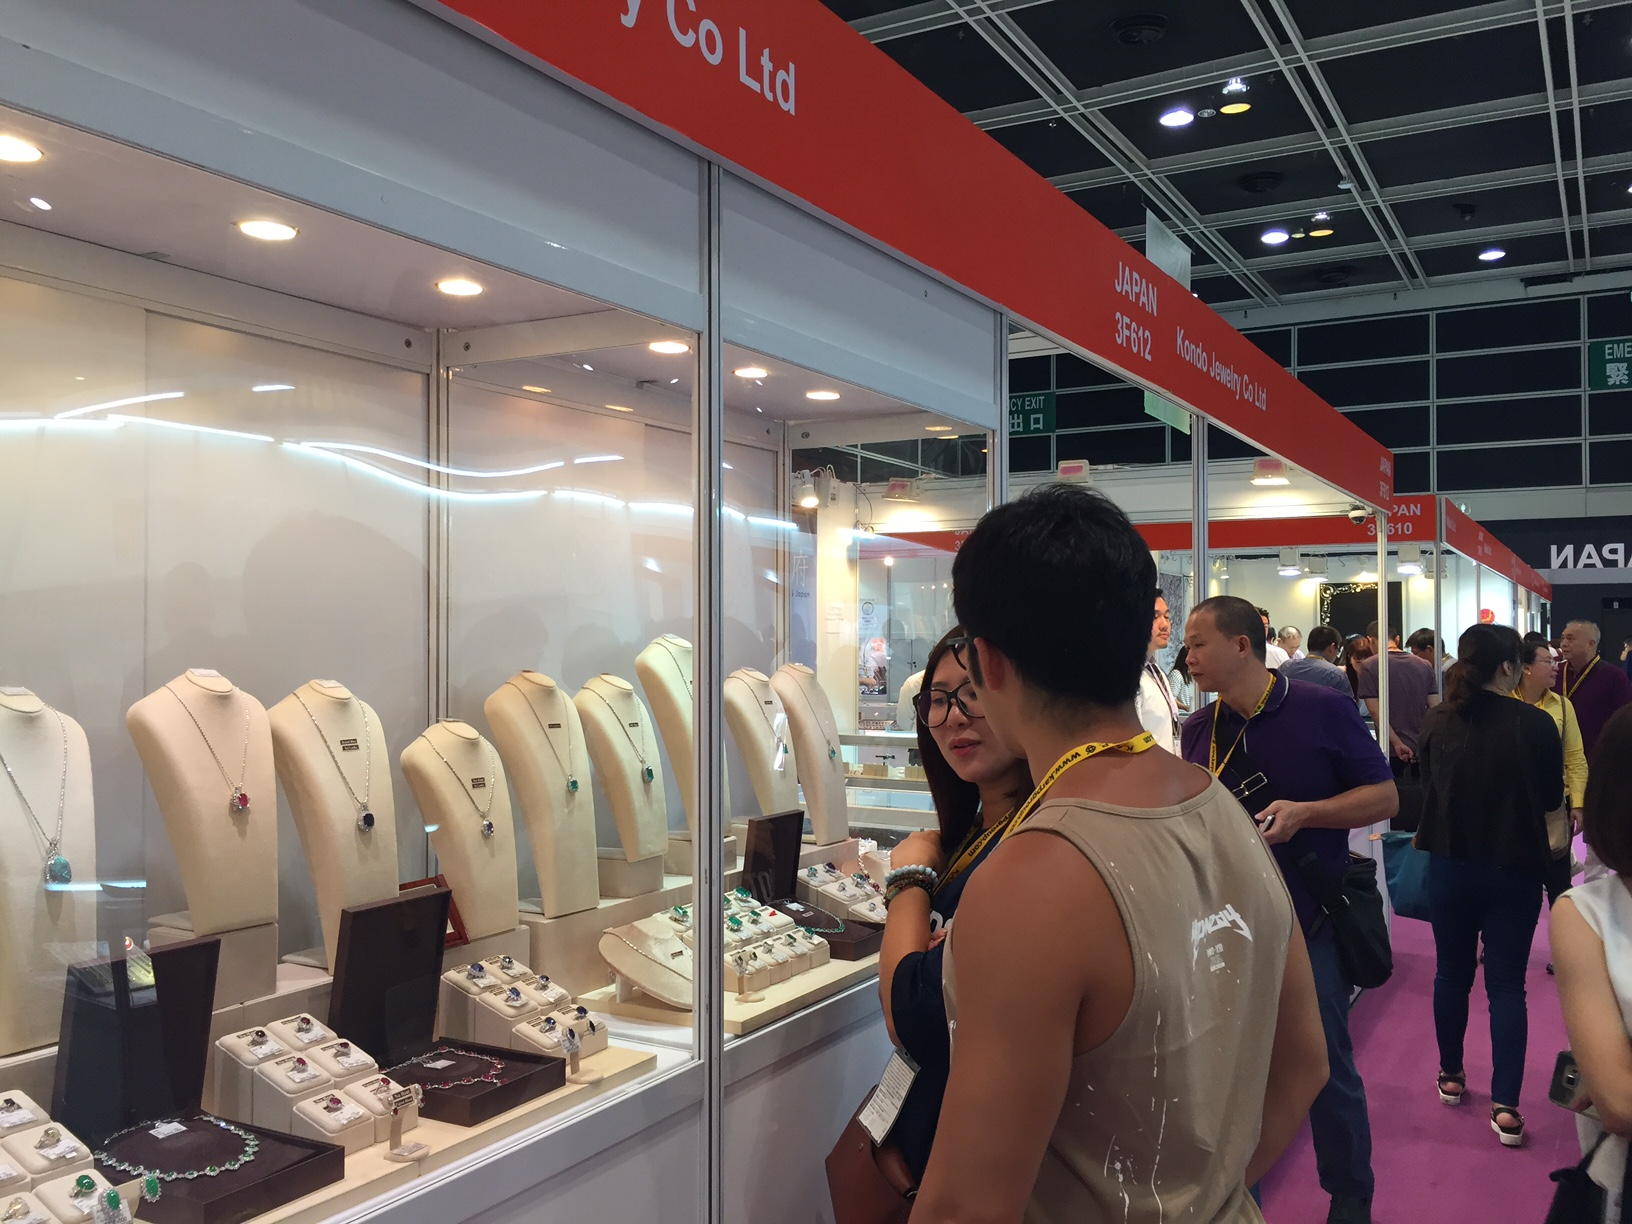 http://kondo-gem.com/information/September%20Hong%20Kong%20International%20Jewellery%20%26%20Gem%20Fair%202016_3.JPG